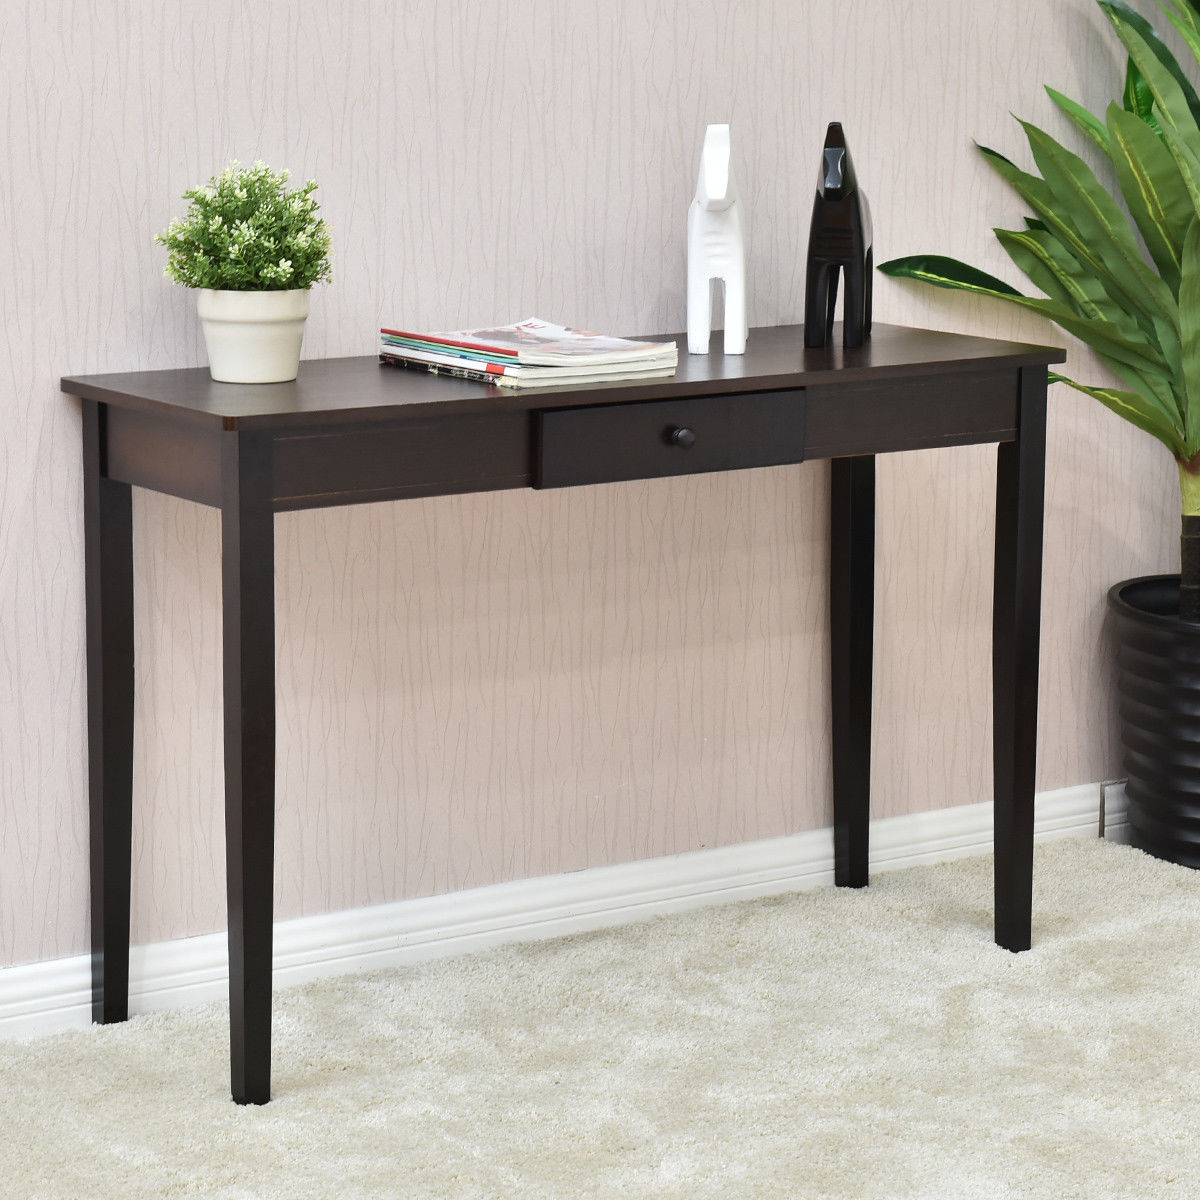 Giantex Console Table Entry Hallway Desk Entryway Side Sofa Accent Table with Drawer Modern Wood Living Room Furniture HW56071 ...